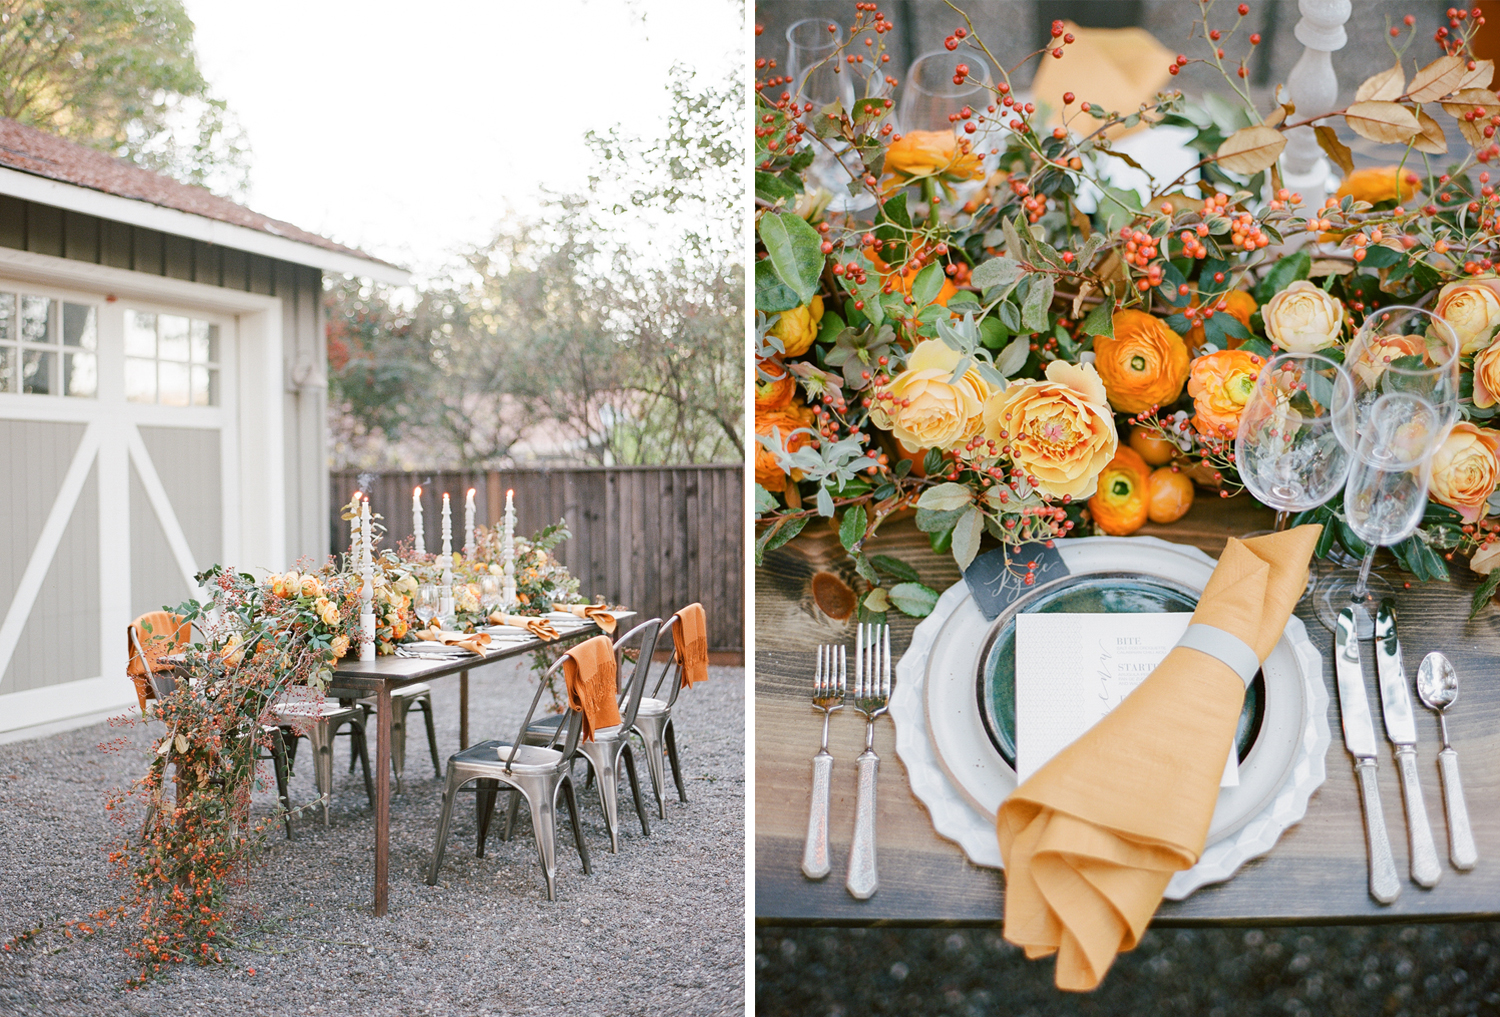 Max Gill foraged reception florals including persimmon branches and orang ranunculus; Sylvie Gil Photography